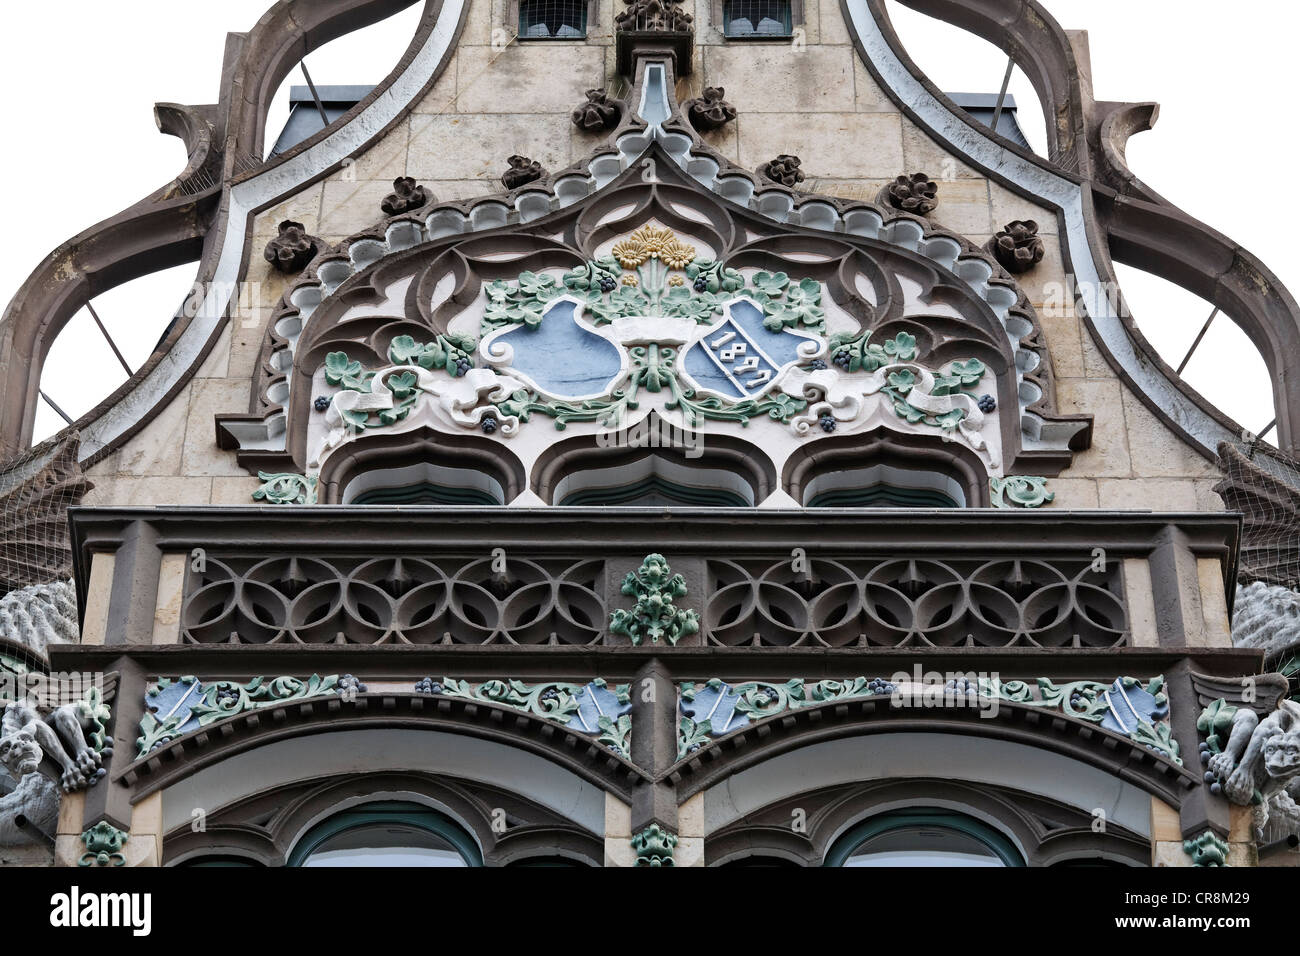 Anger 23 commercial building, art nouveau facade, Erfurt, Thuringia, Germany, Europe - Stock Image